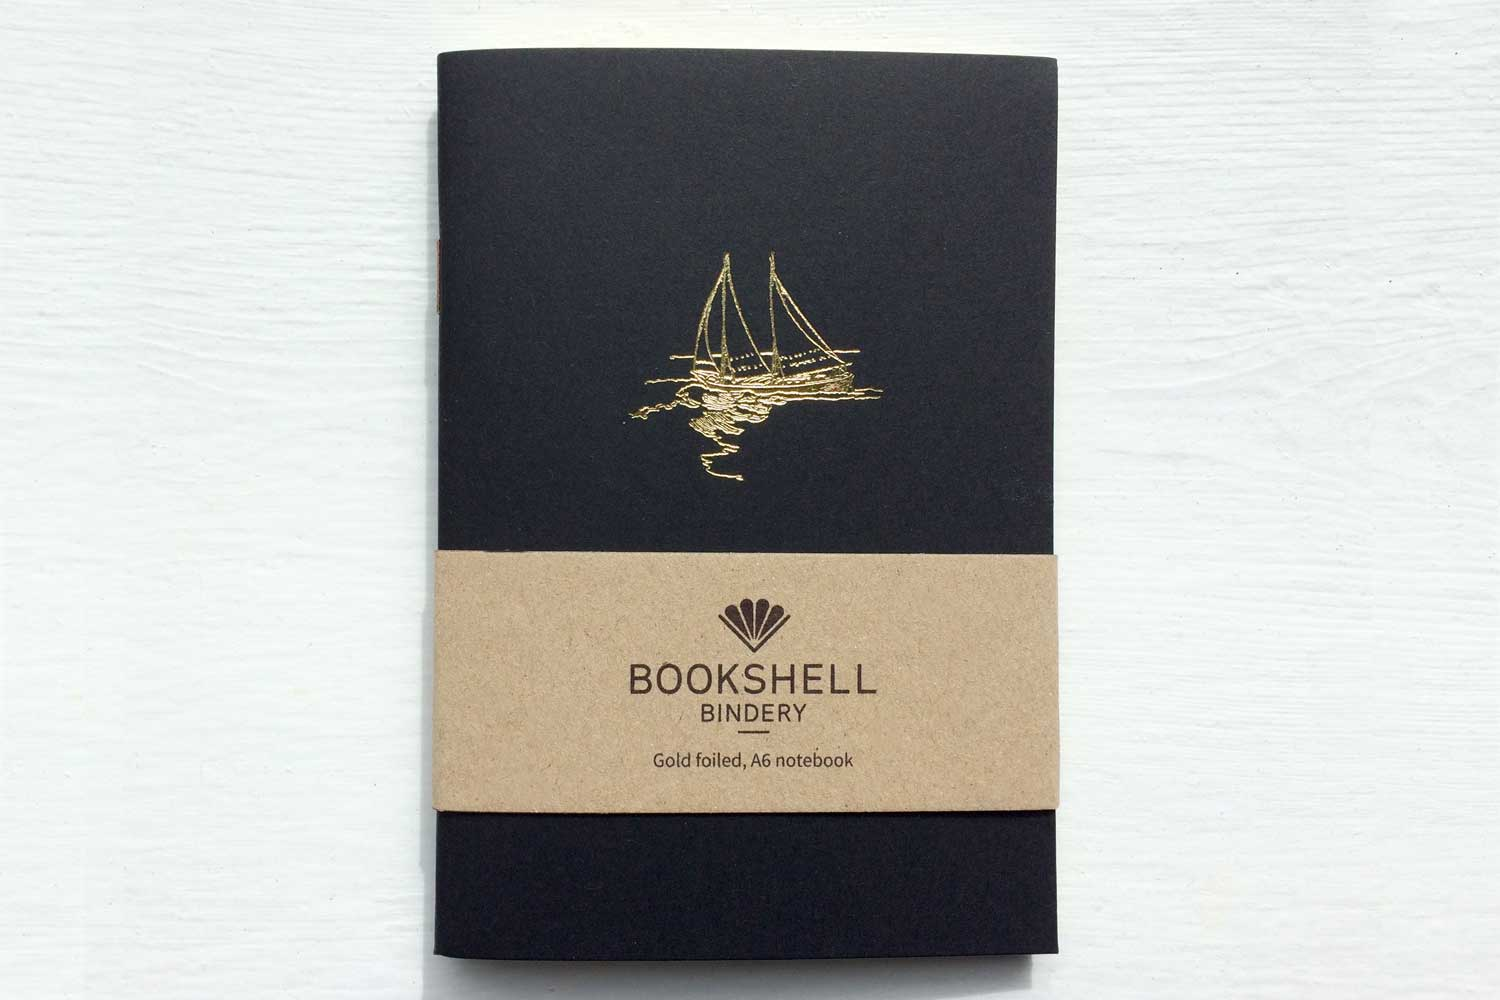 A6 notebook with choice of gold foil picture from Bookshell, boat